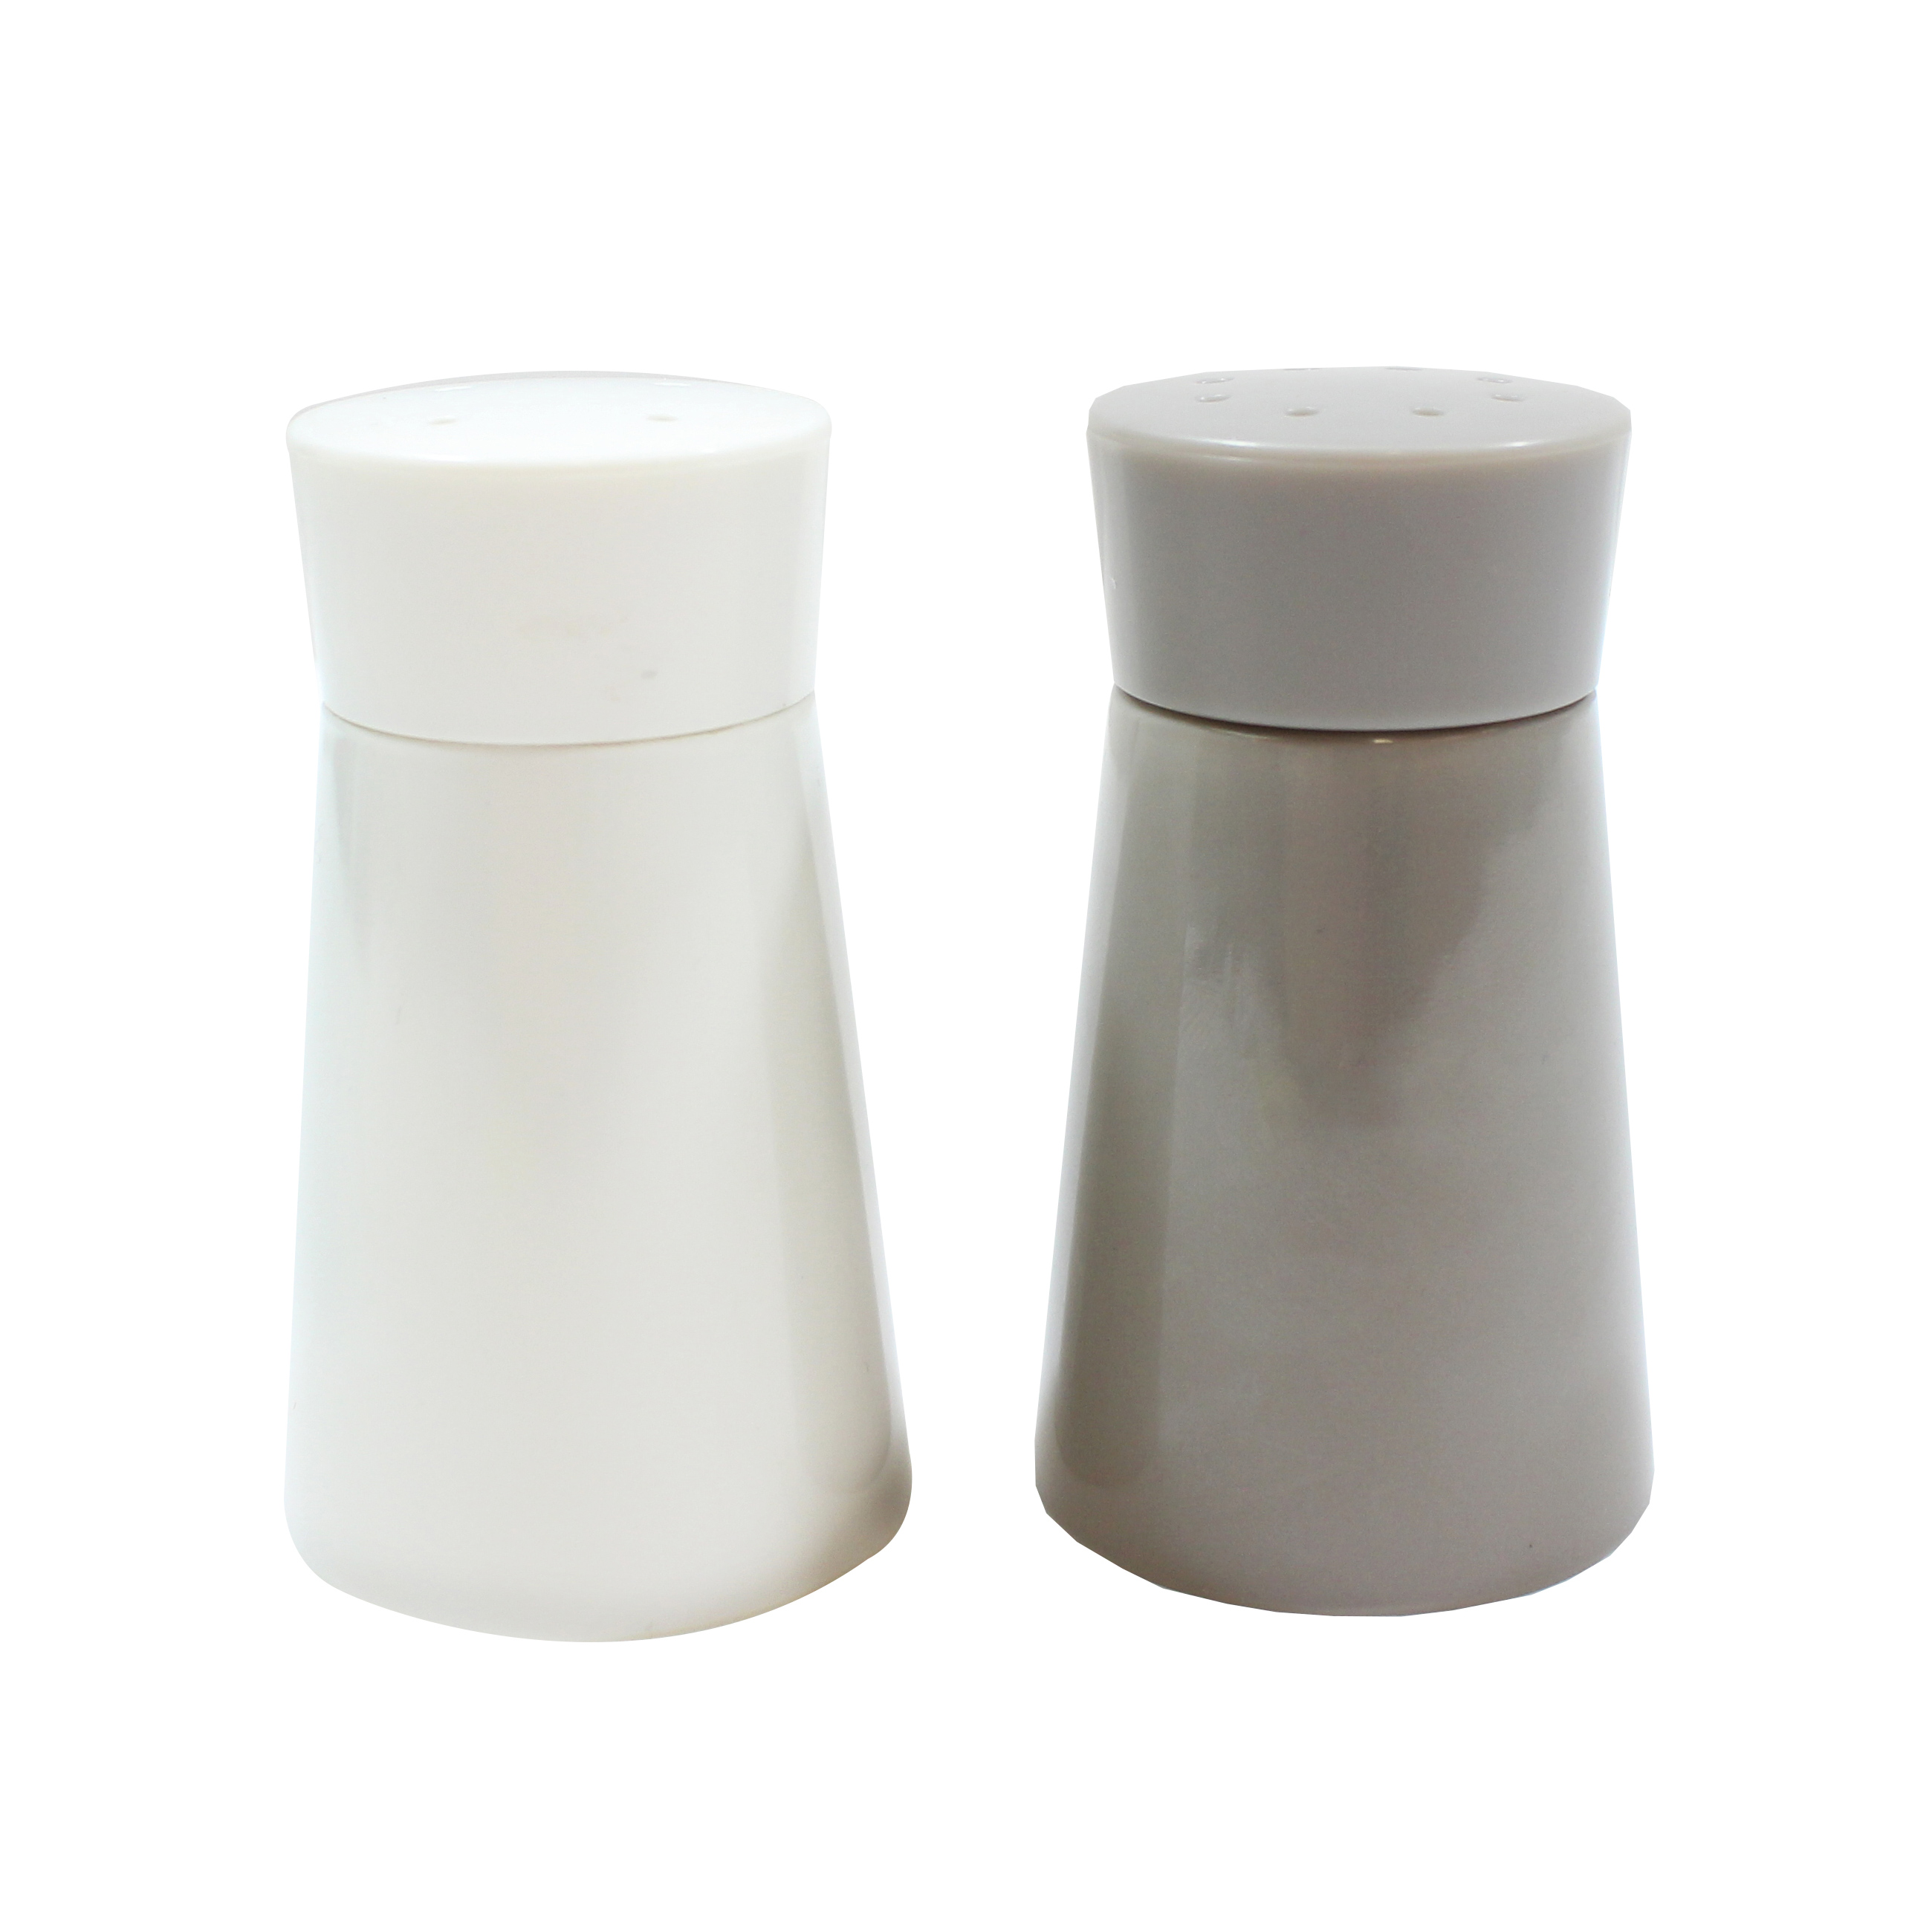 TableCraft Products 700019 salt / pepper shaker